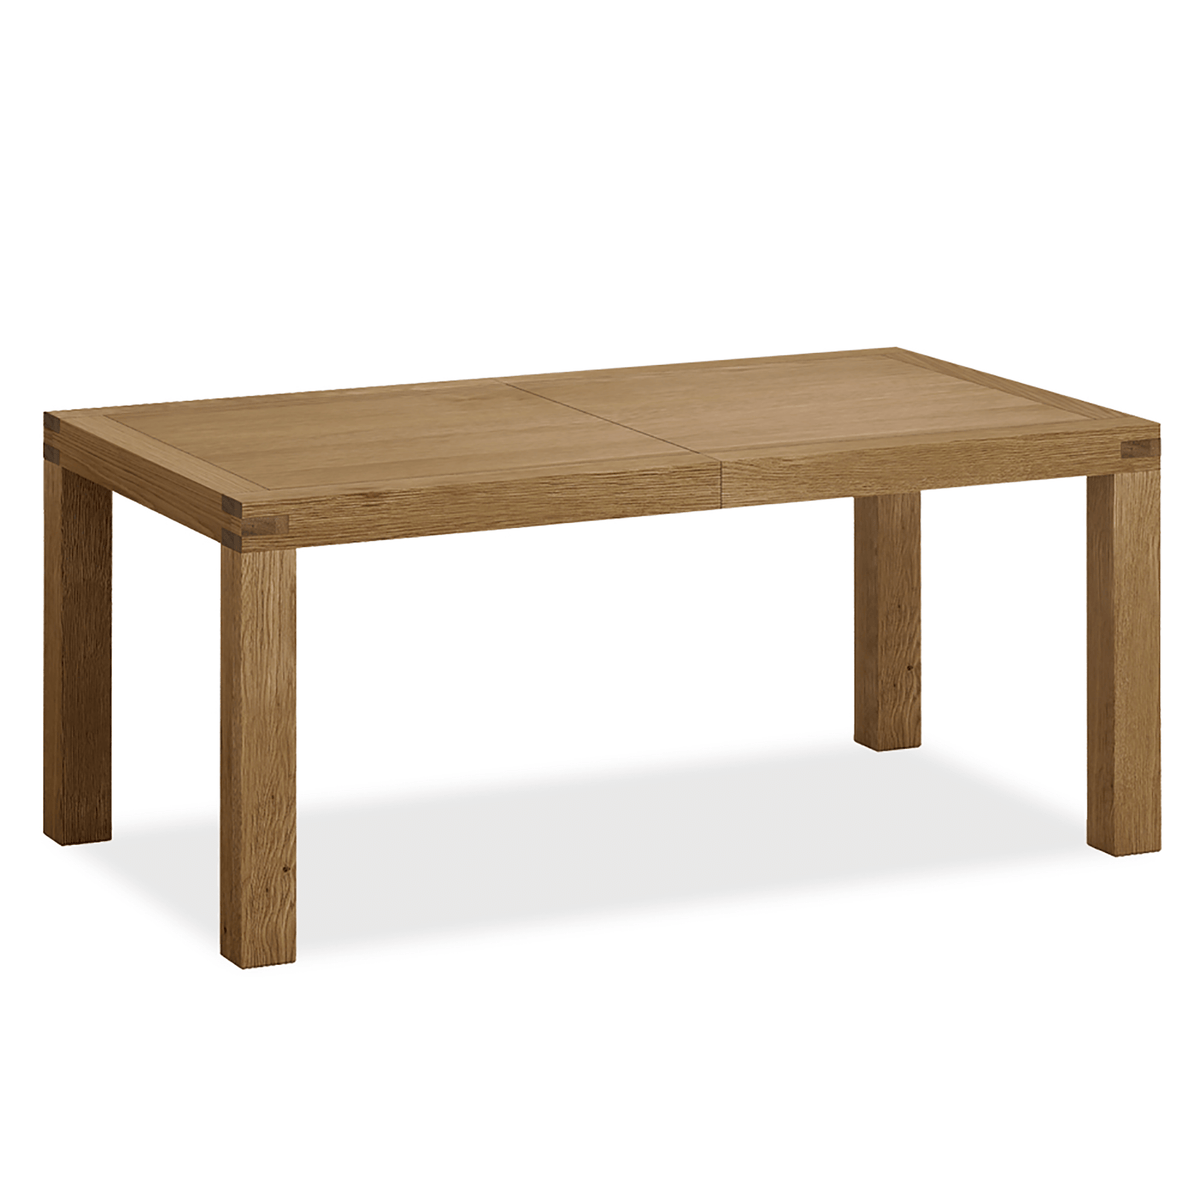 Abbey Grande 180cm-230cm Extending Table